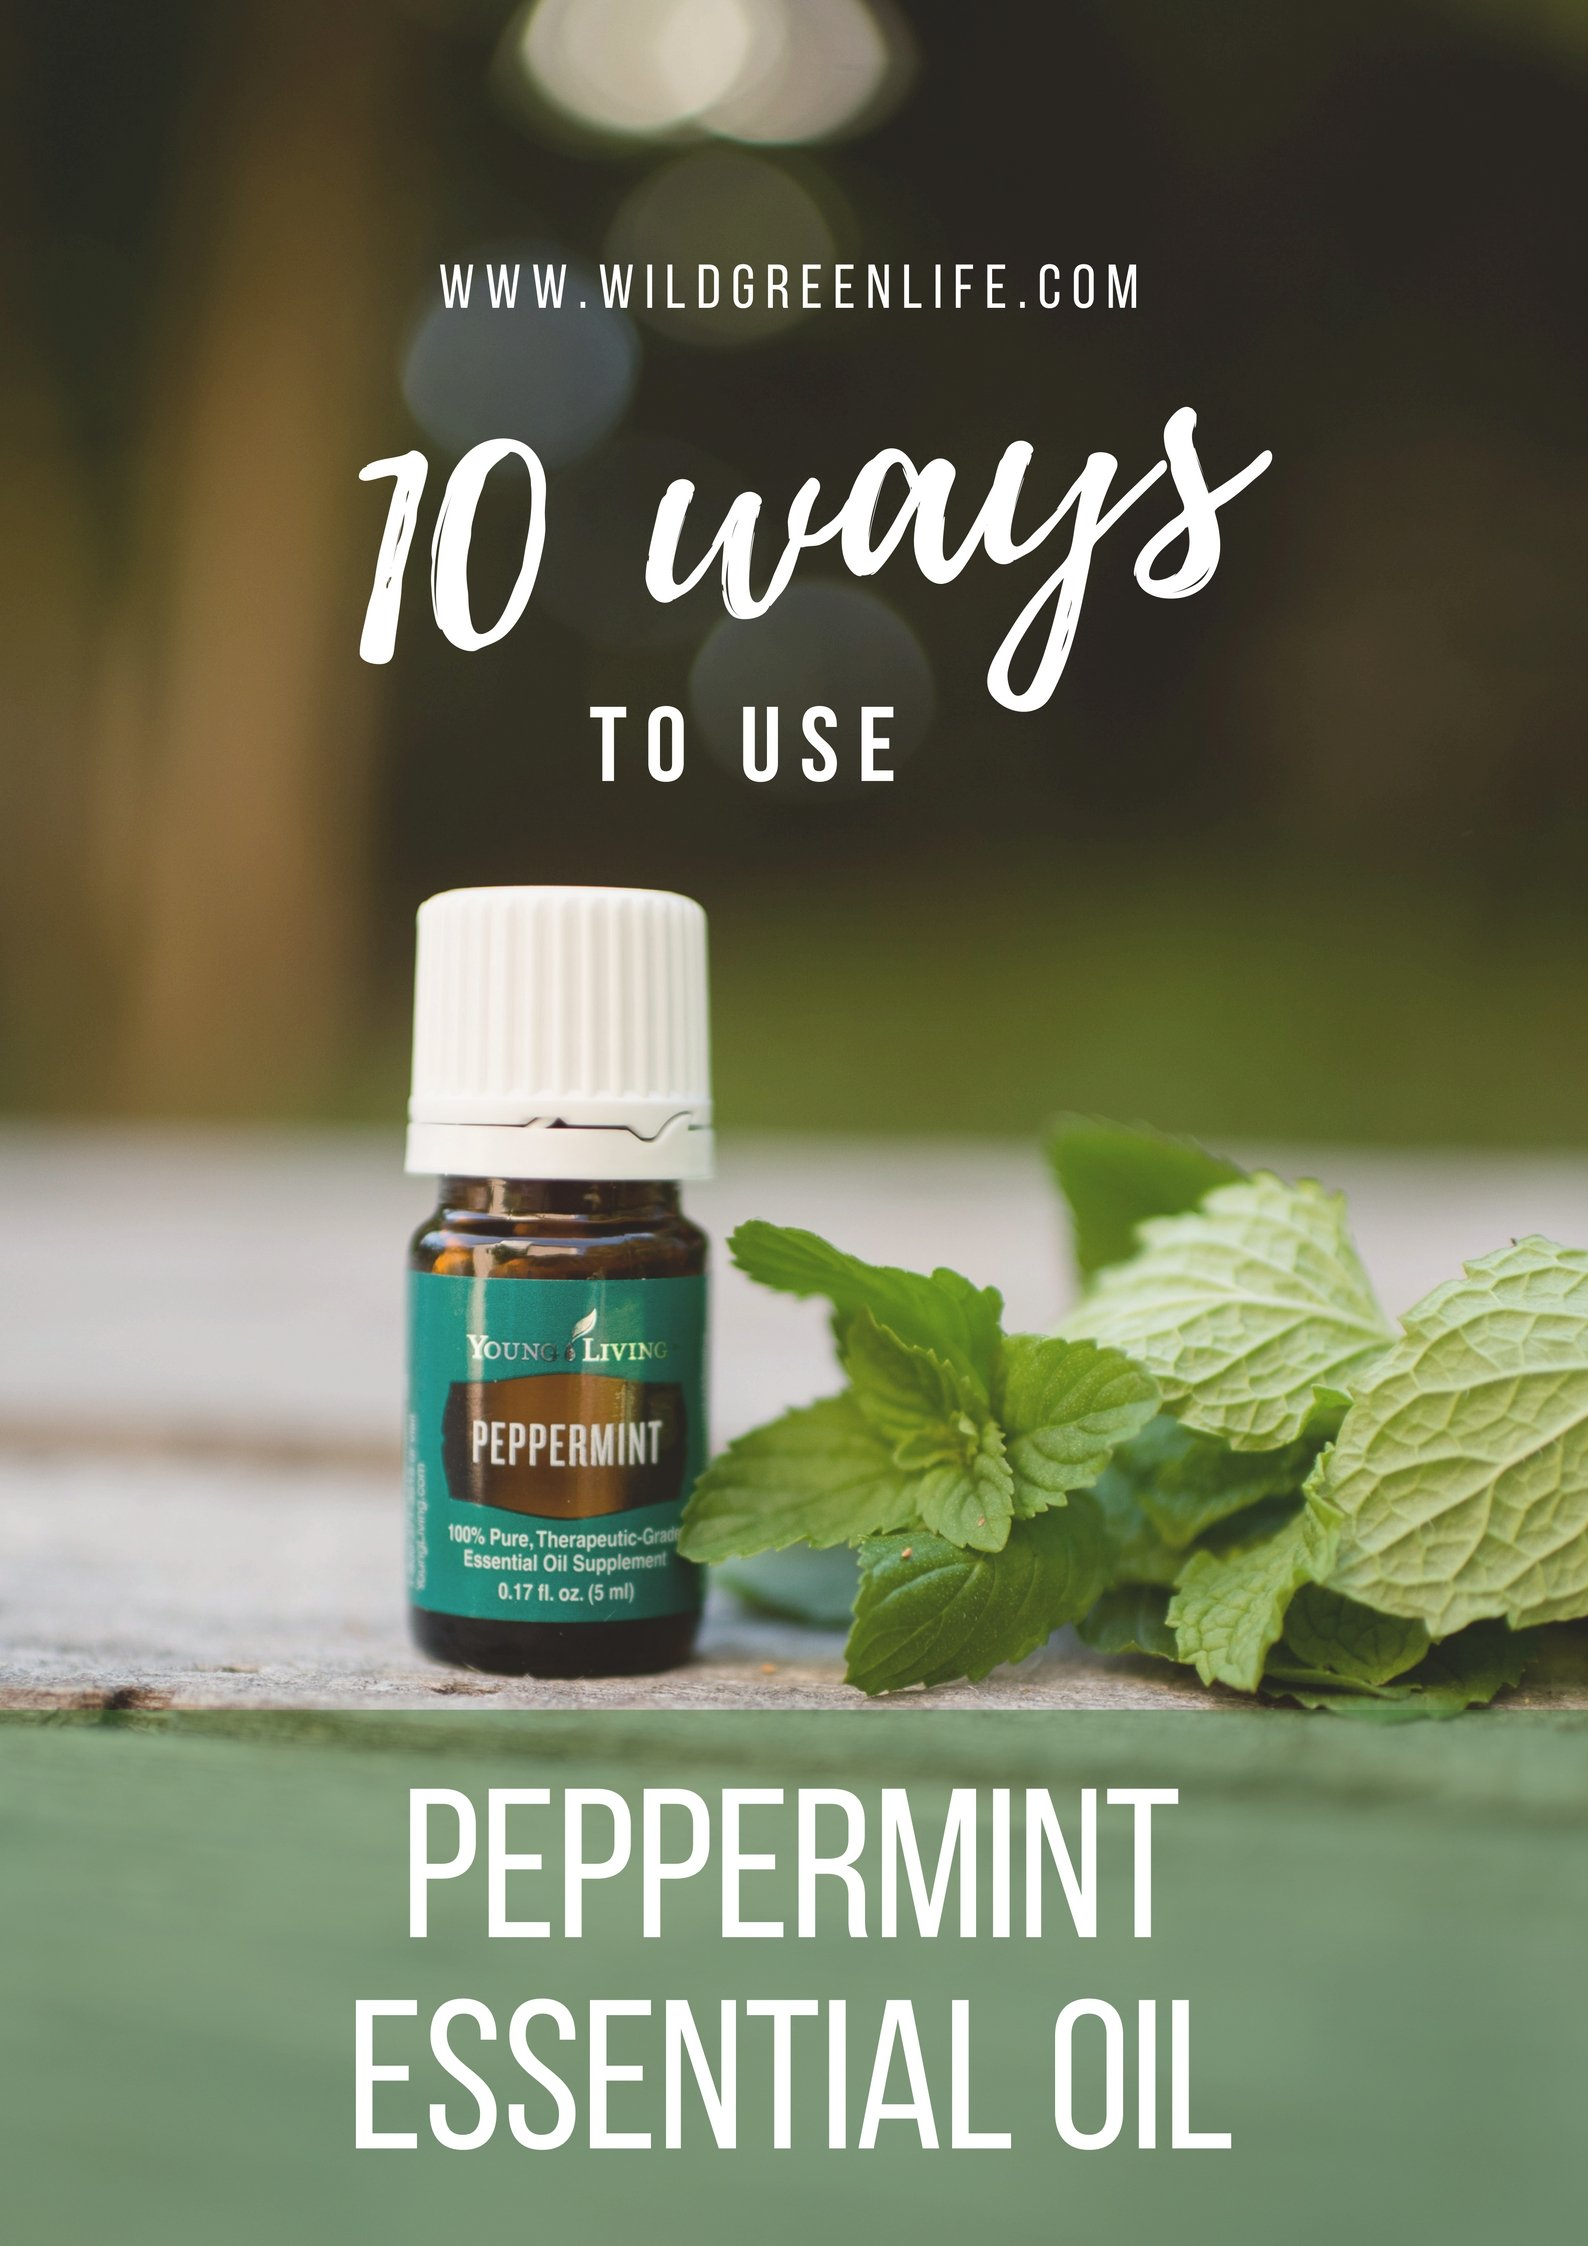 10 ways to use peppermint essential oil... trust me, once you learn these tricks, you won't remember what you used to do without it! Click through to read more, or pin to save for later!